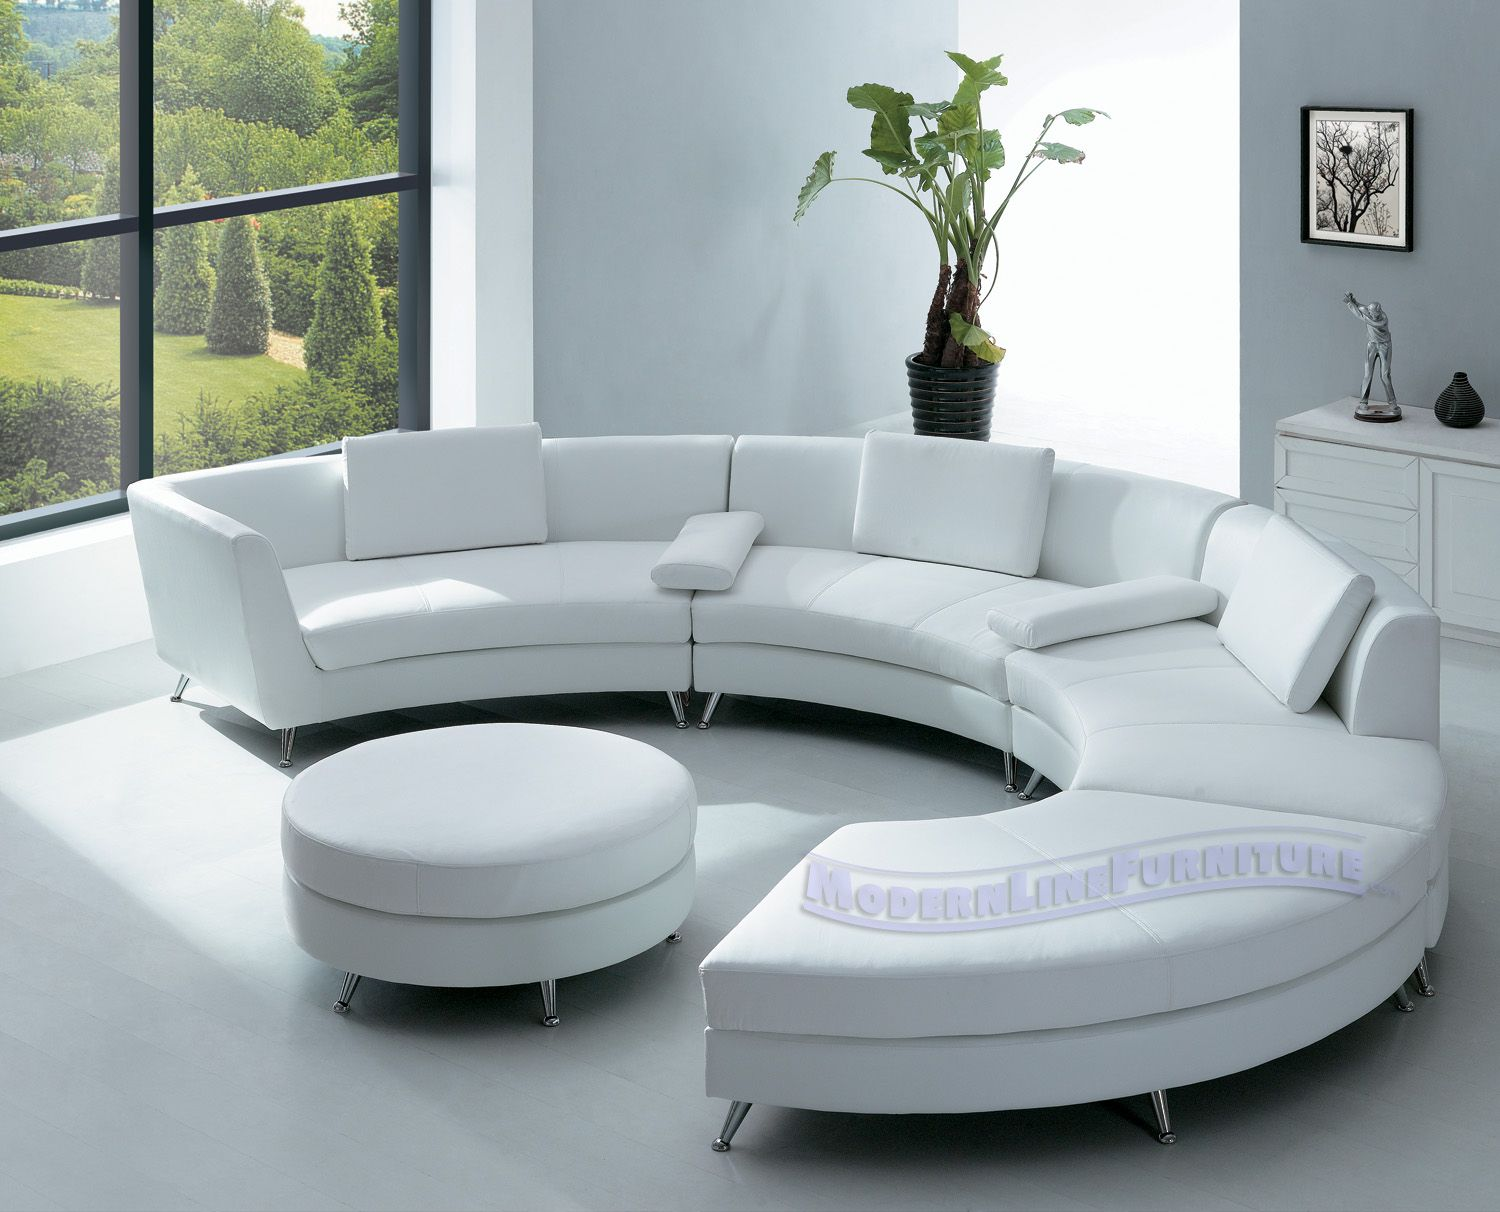 Latest Furniture Designs For Living Room Amazing Room Furniture With Elegant Half Circle Sofa Home Interior Designs Design Ideas